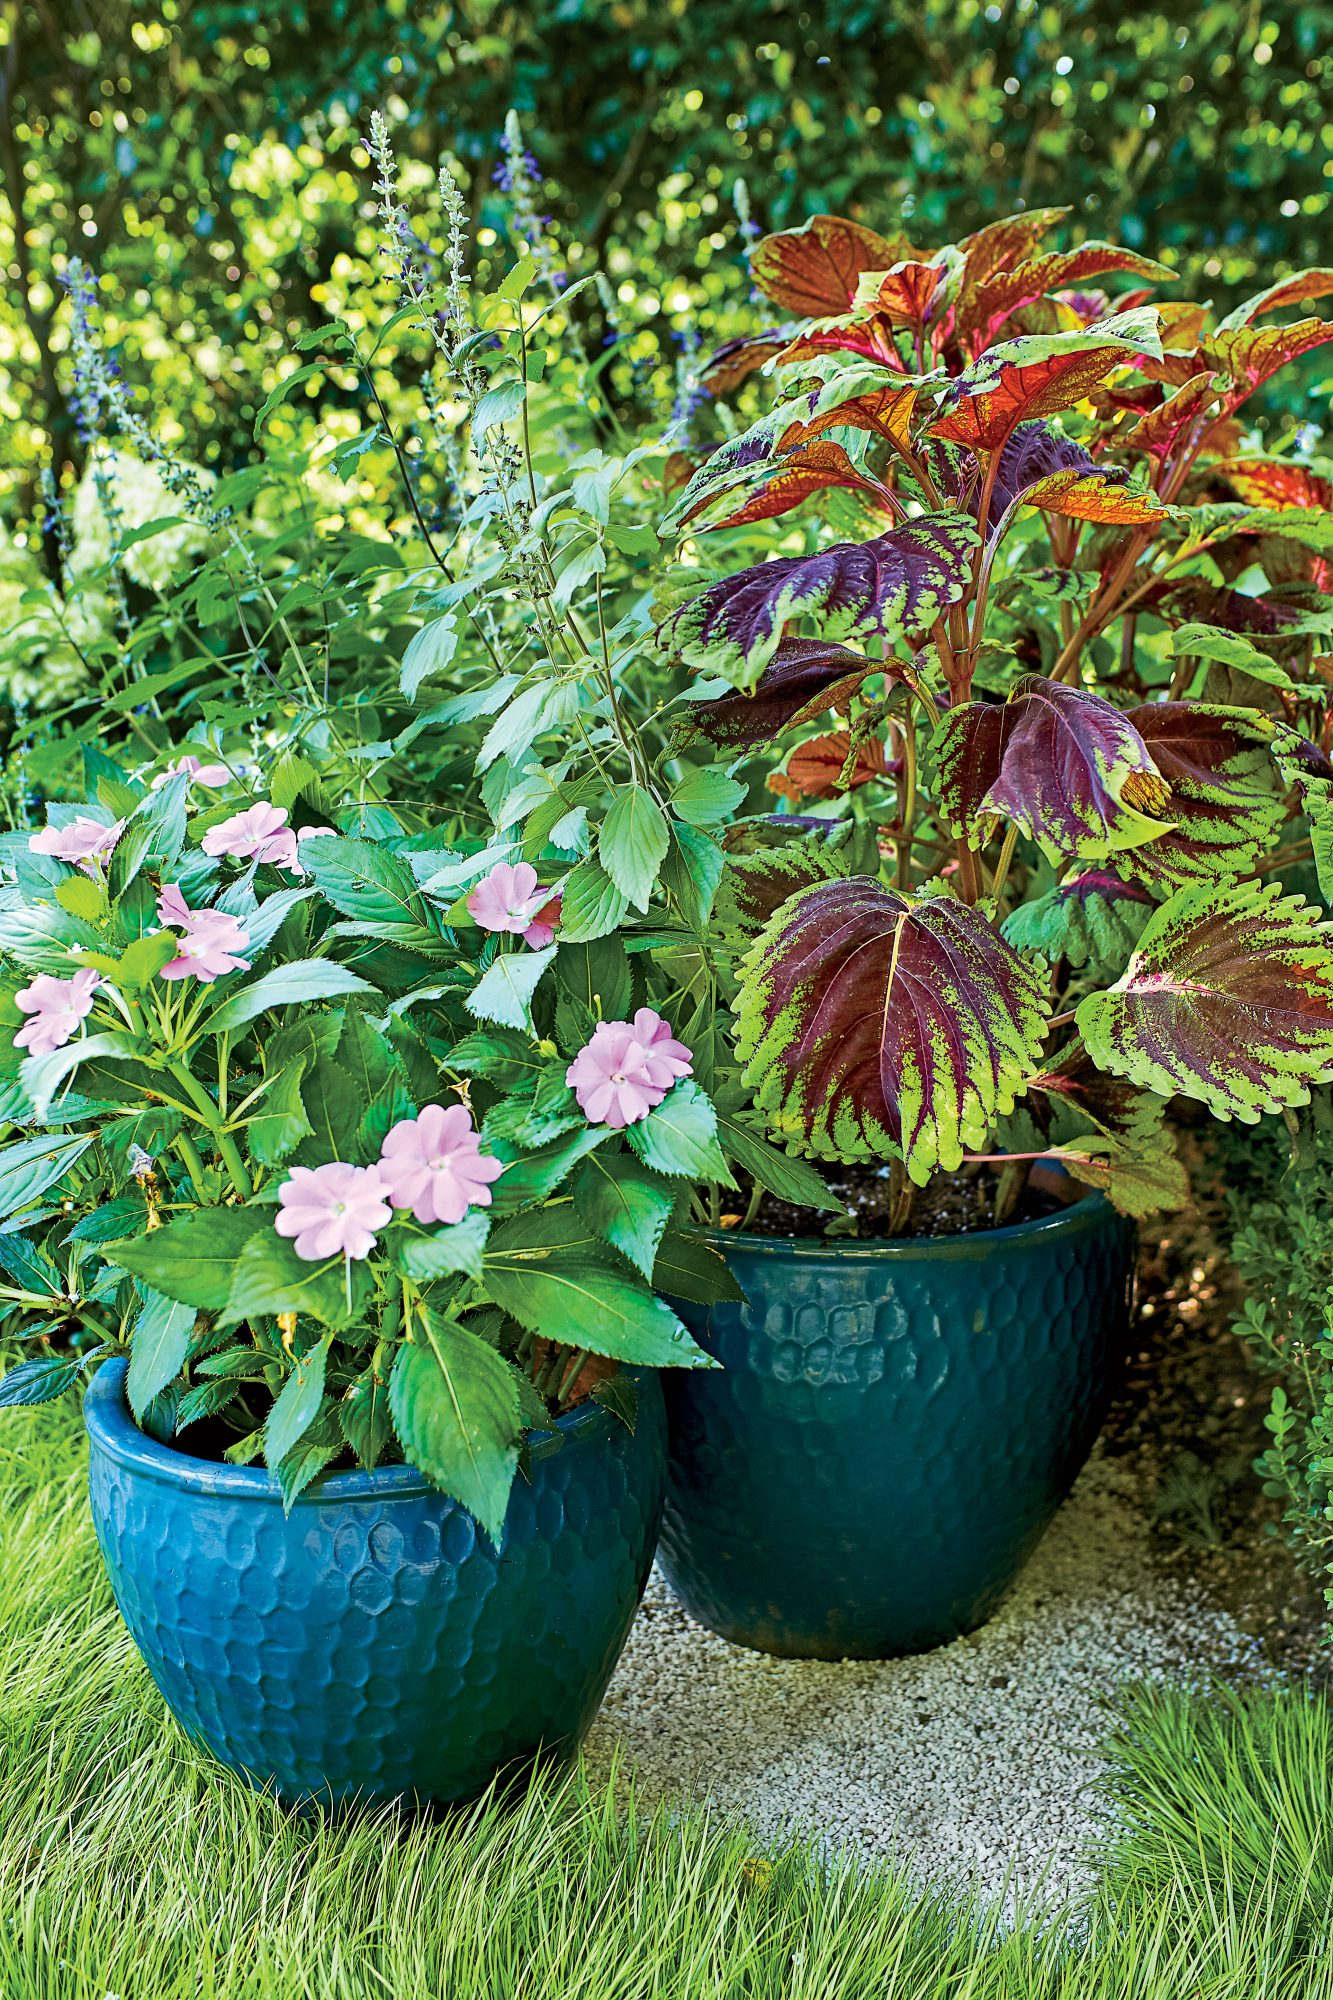 Anthony Brewington Bungalow Garden Pots with Flowers for Color